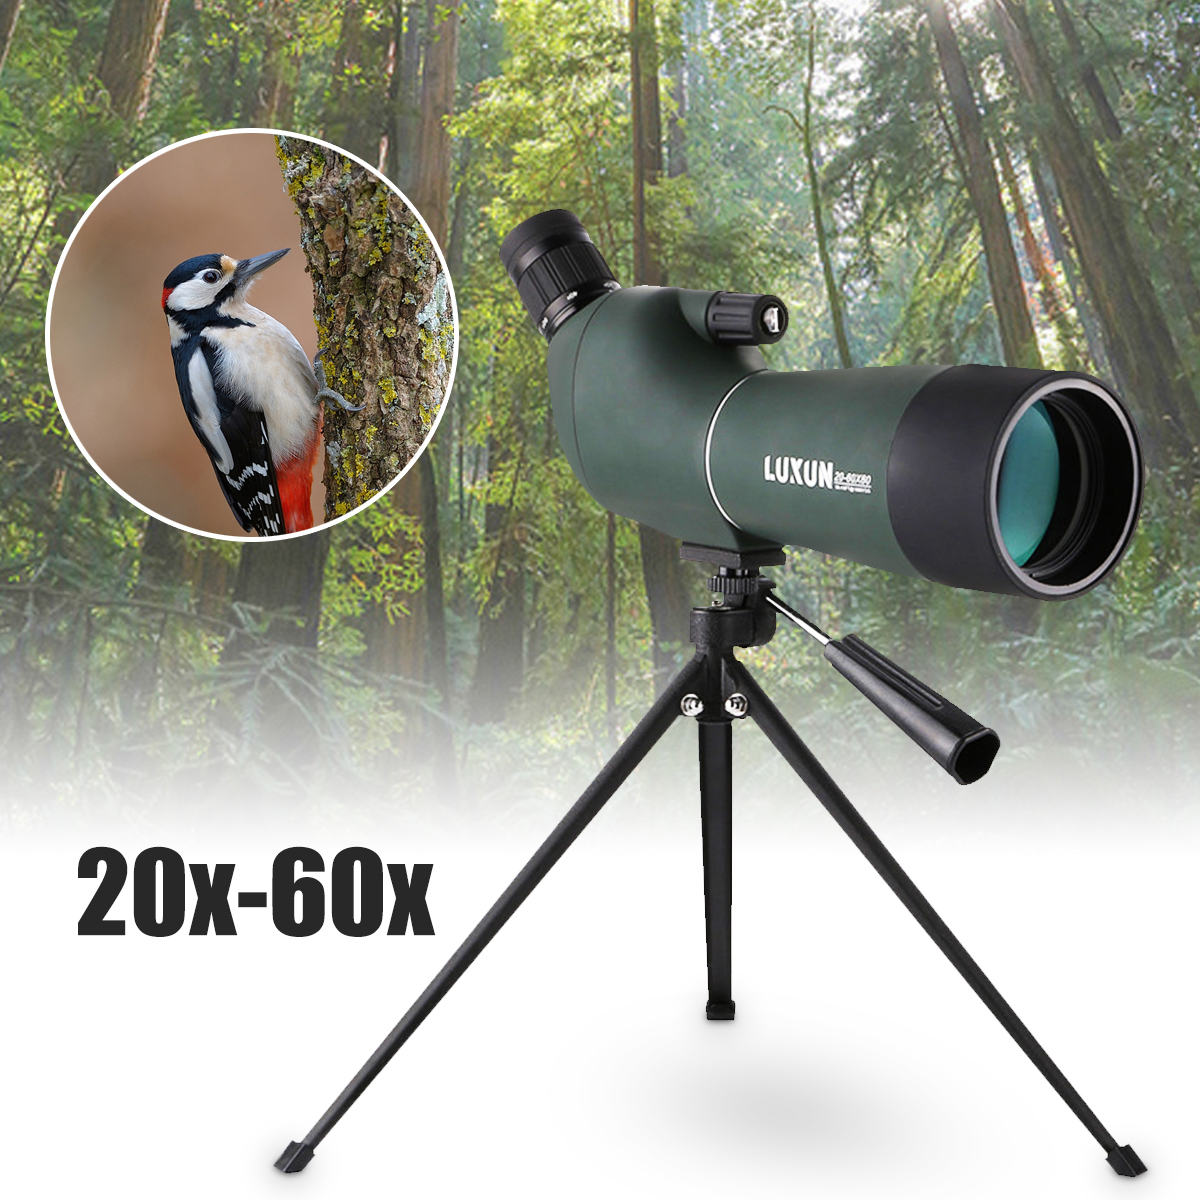 20-60x60mm Night Vision Spotting Scope Telescope Zoom 60mm Waterproof Birdwatch Hunting HD Monocular Tripod Outdoor Camping 15 45x60 spotting scope waterproof telescope 60mm 15 45x zoom birdwatch long range hunting monocular with tripod mount page 1